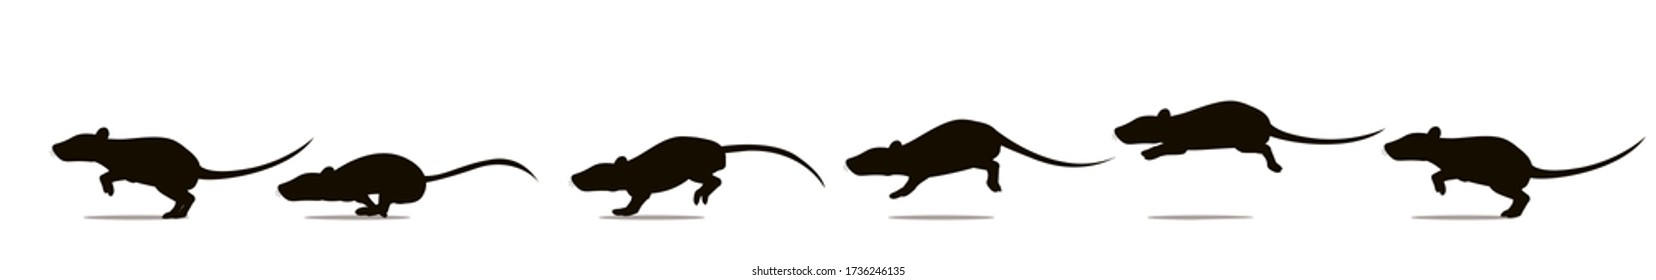 Full cycle of rat or mouse running animation. Vector illustration, silhouettes.